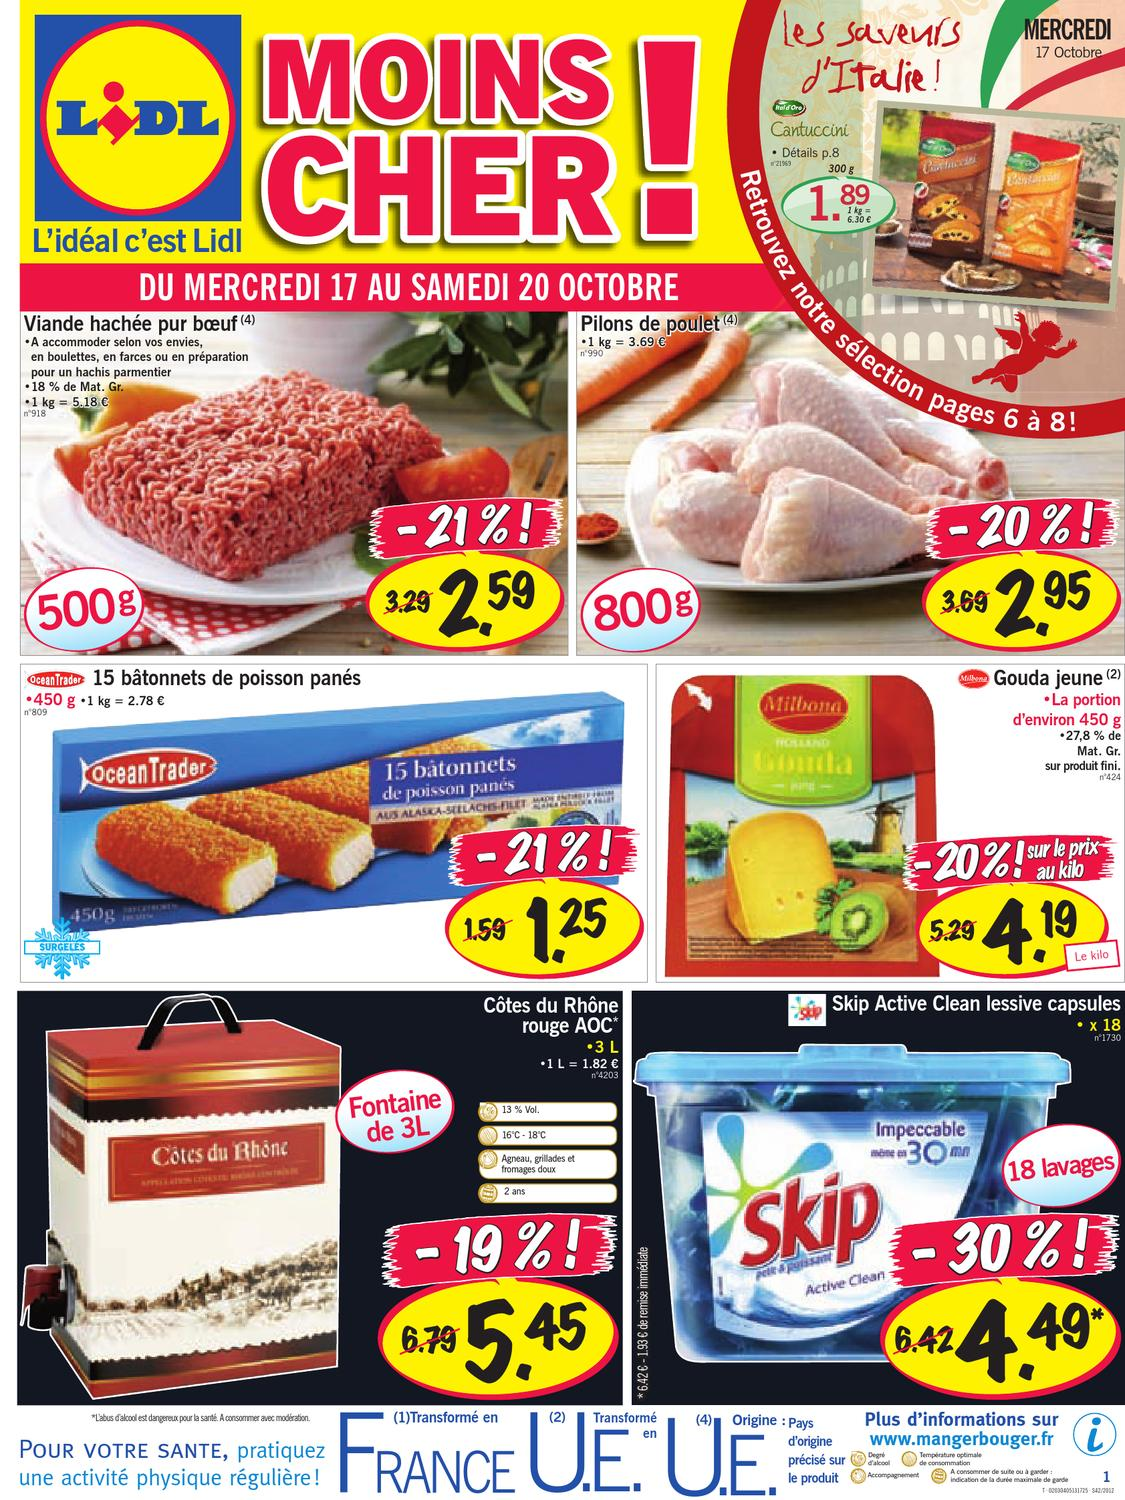 Lidl Catalogue 17 23 Octobre 2012 By Promocataloguescom Issuu